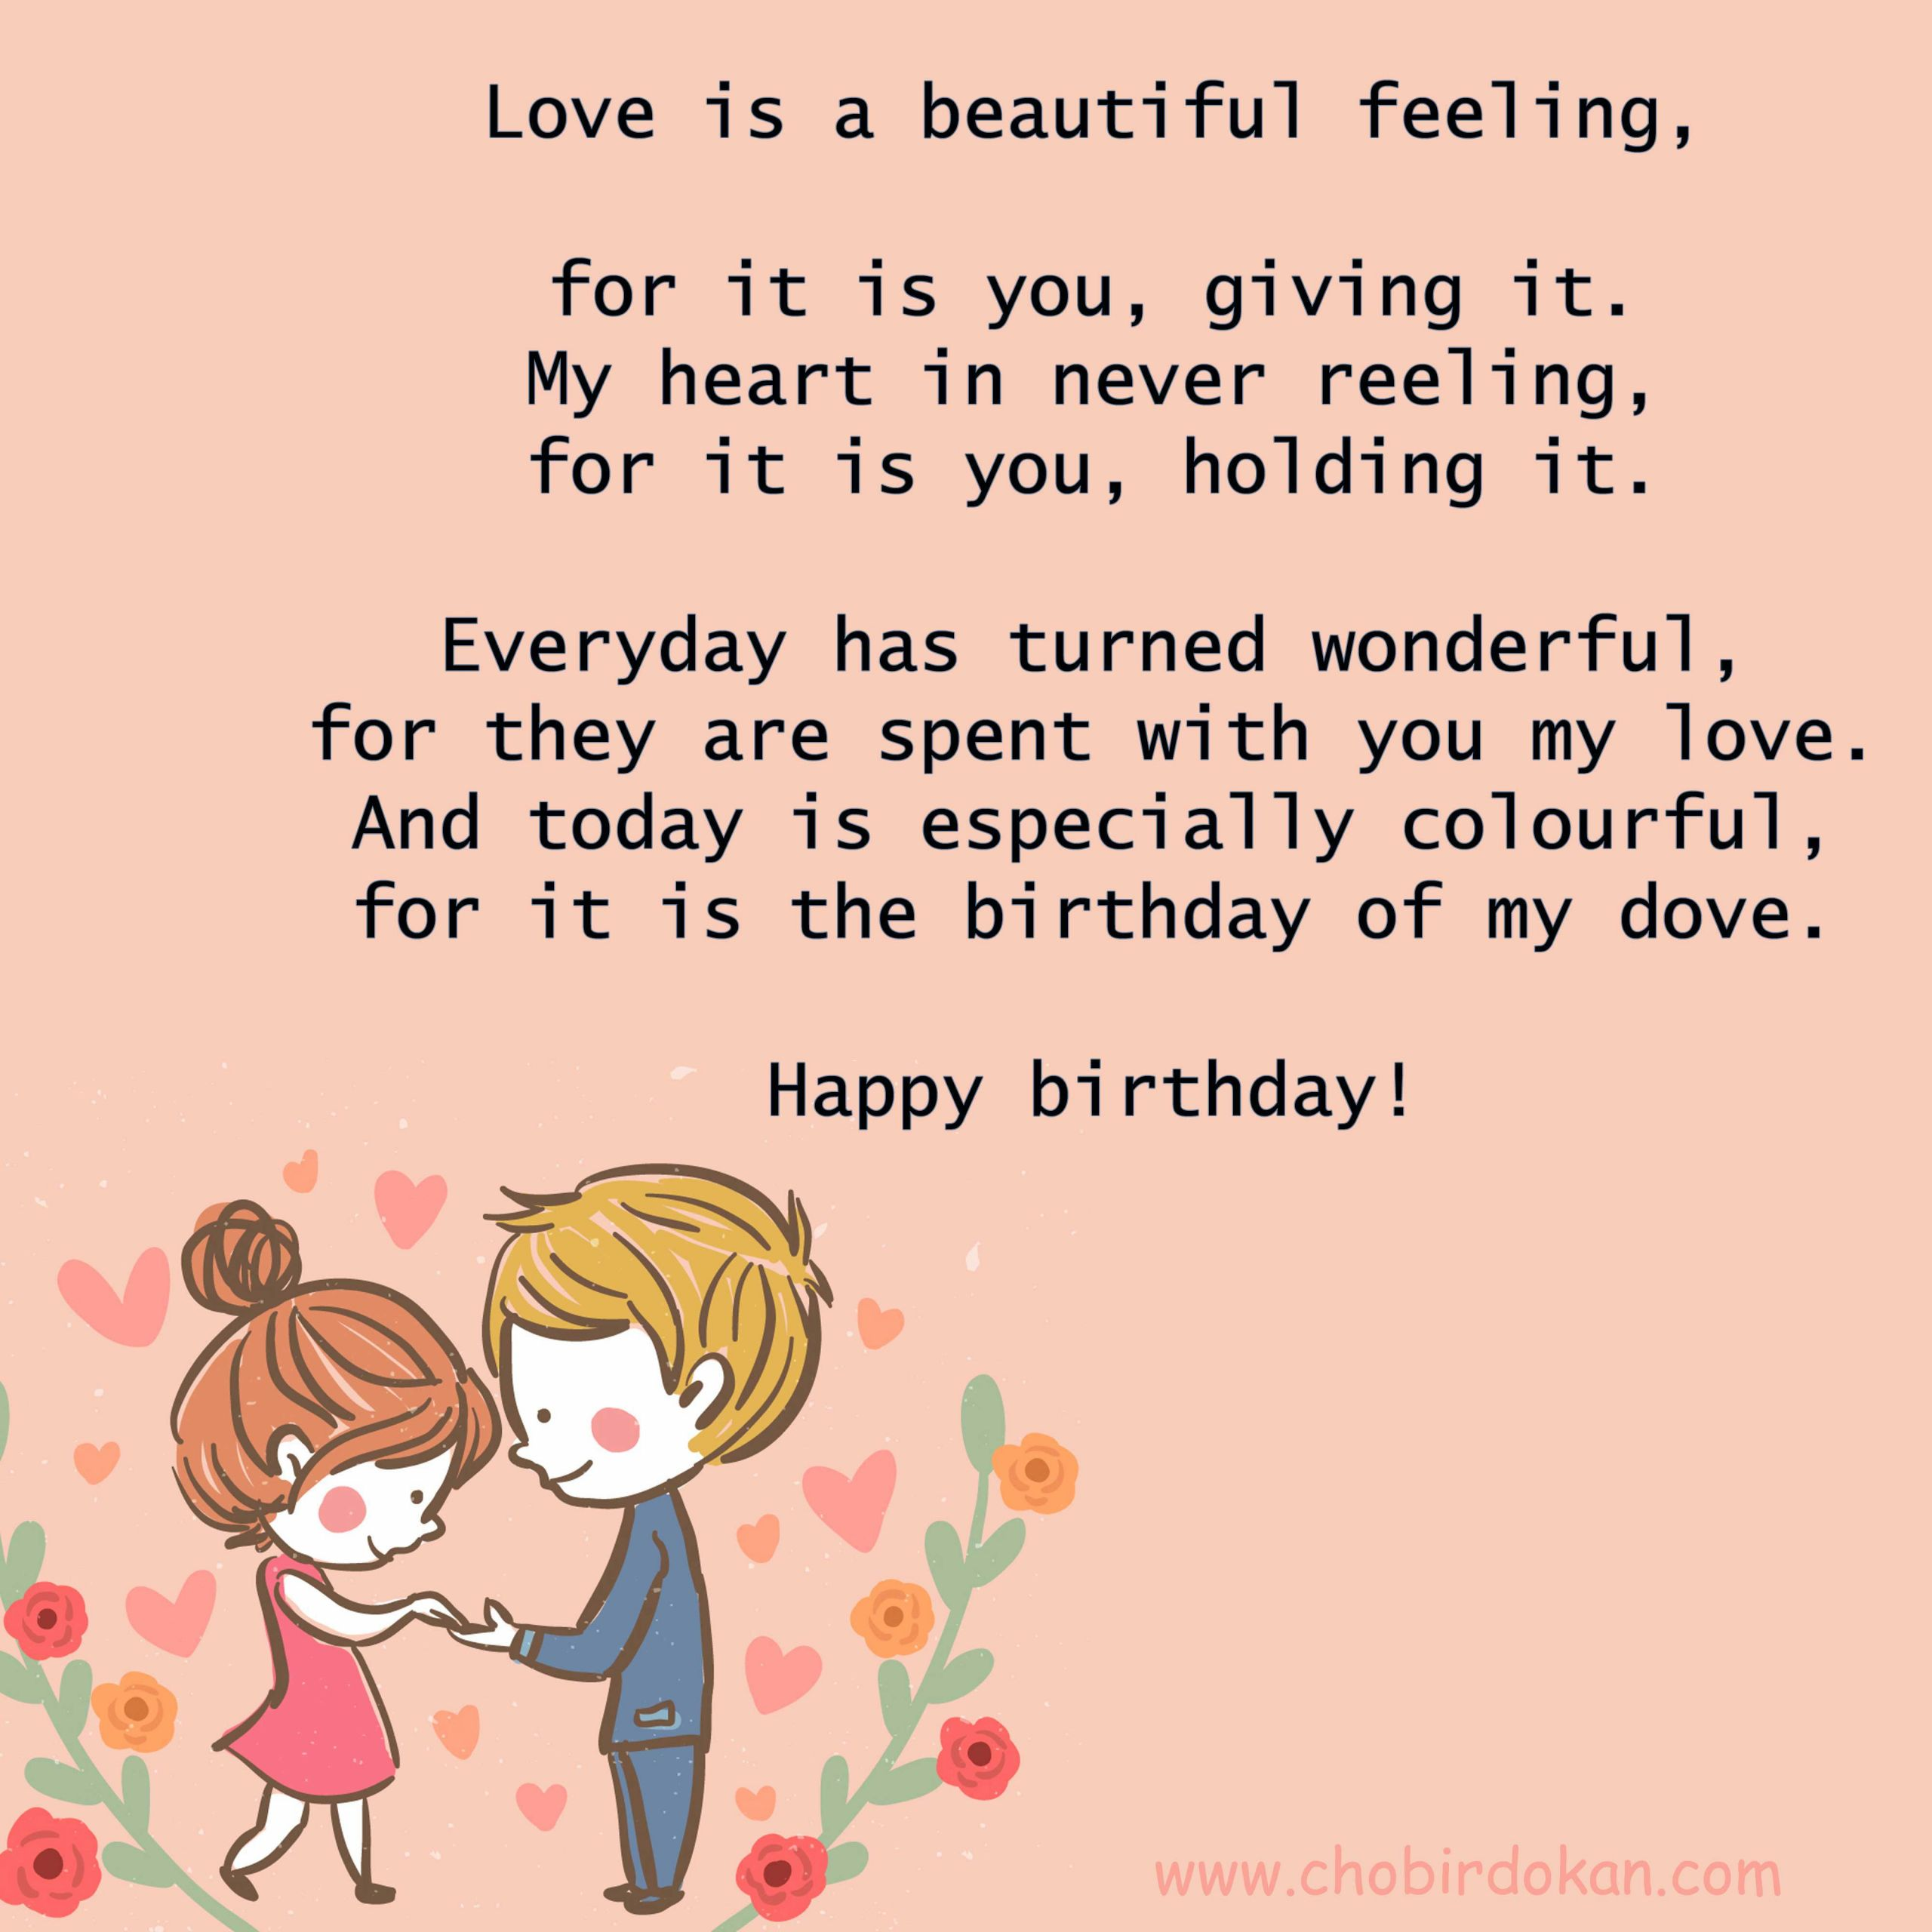 Birthday Wishes Poems  Happy Birthday Poems For Him Cute Poetry for Boyfriend or